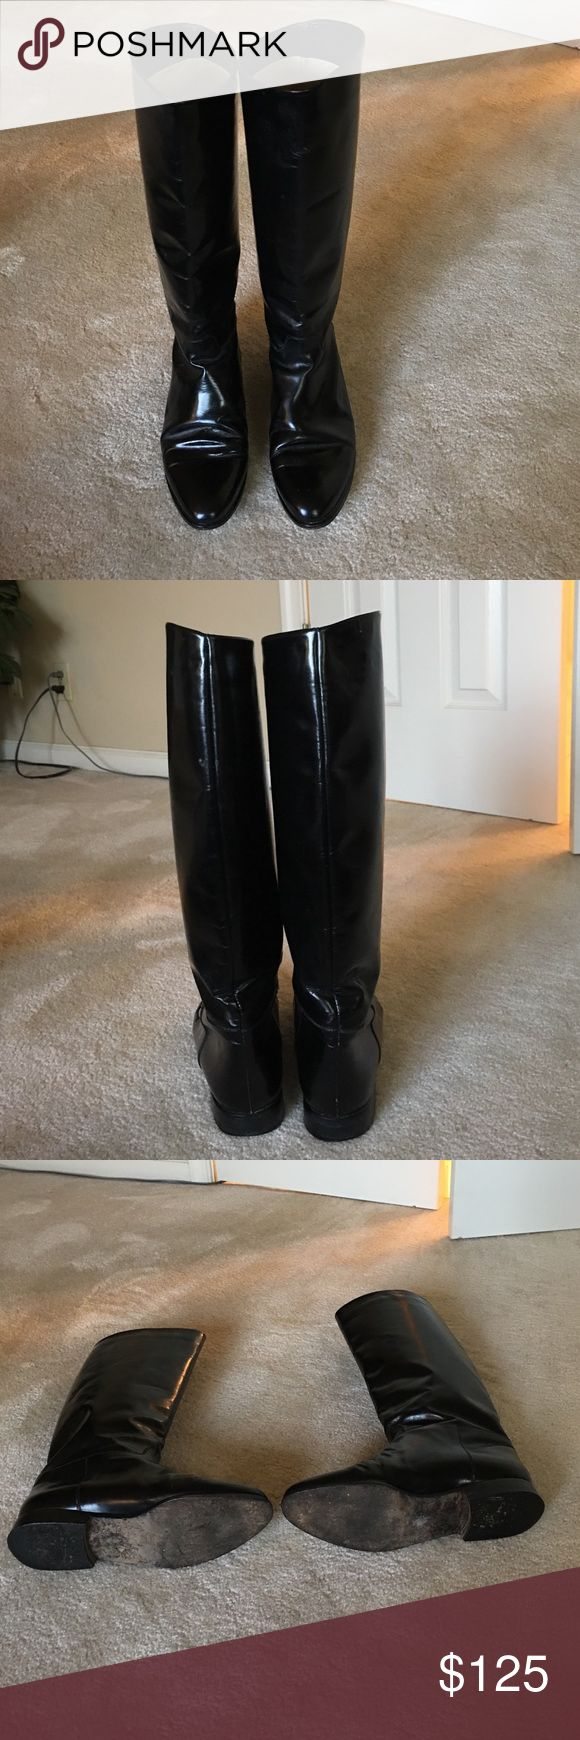 Charles David leather riding boots. Charles David black leather riding boots. Excellent condition!! Made in Italy. Charles David Shoes